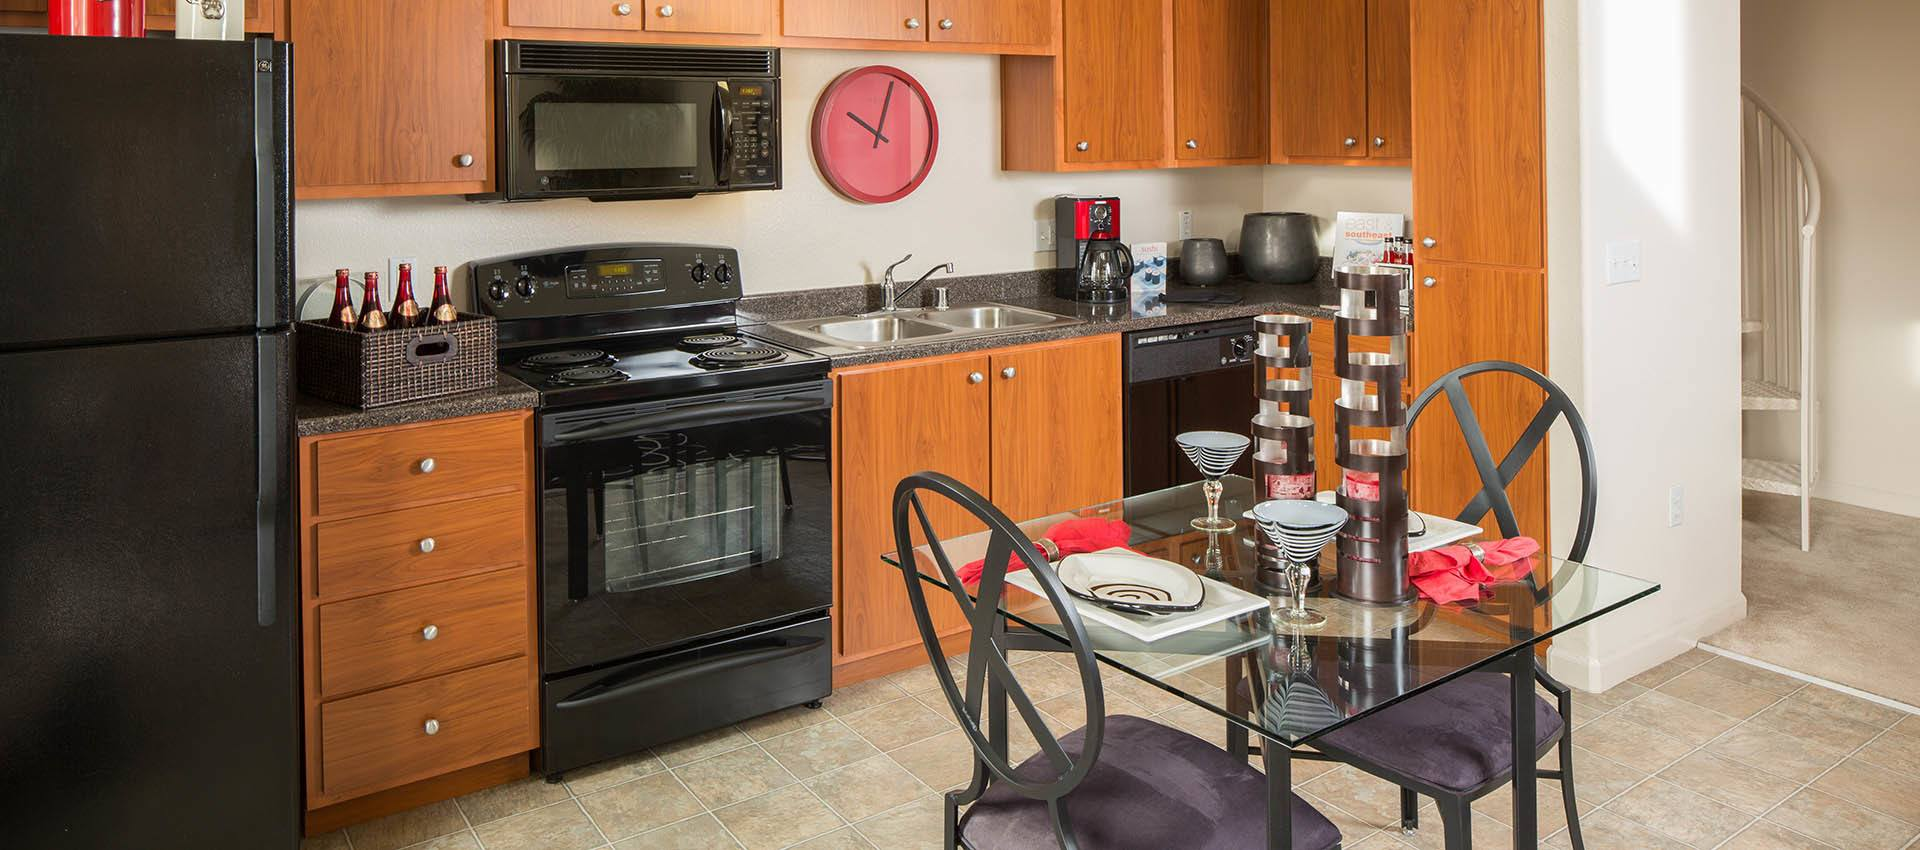 Standard kitchen at Venu at Galleria Condominium Rentals in Roseville, California